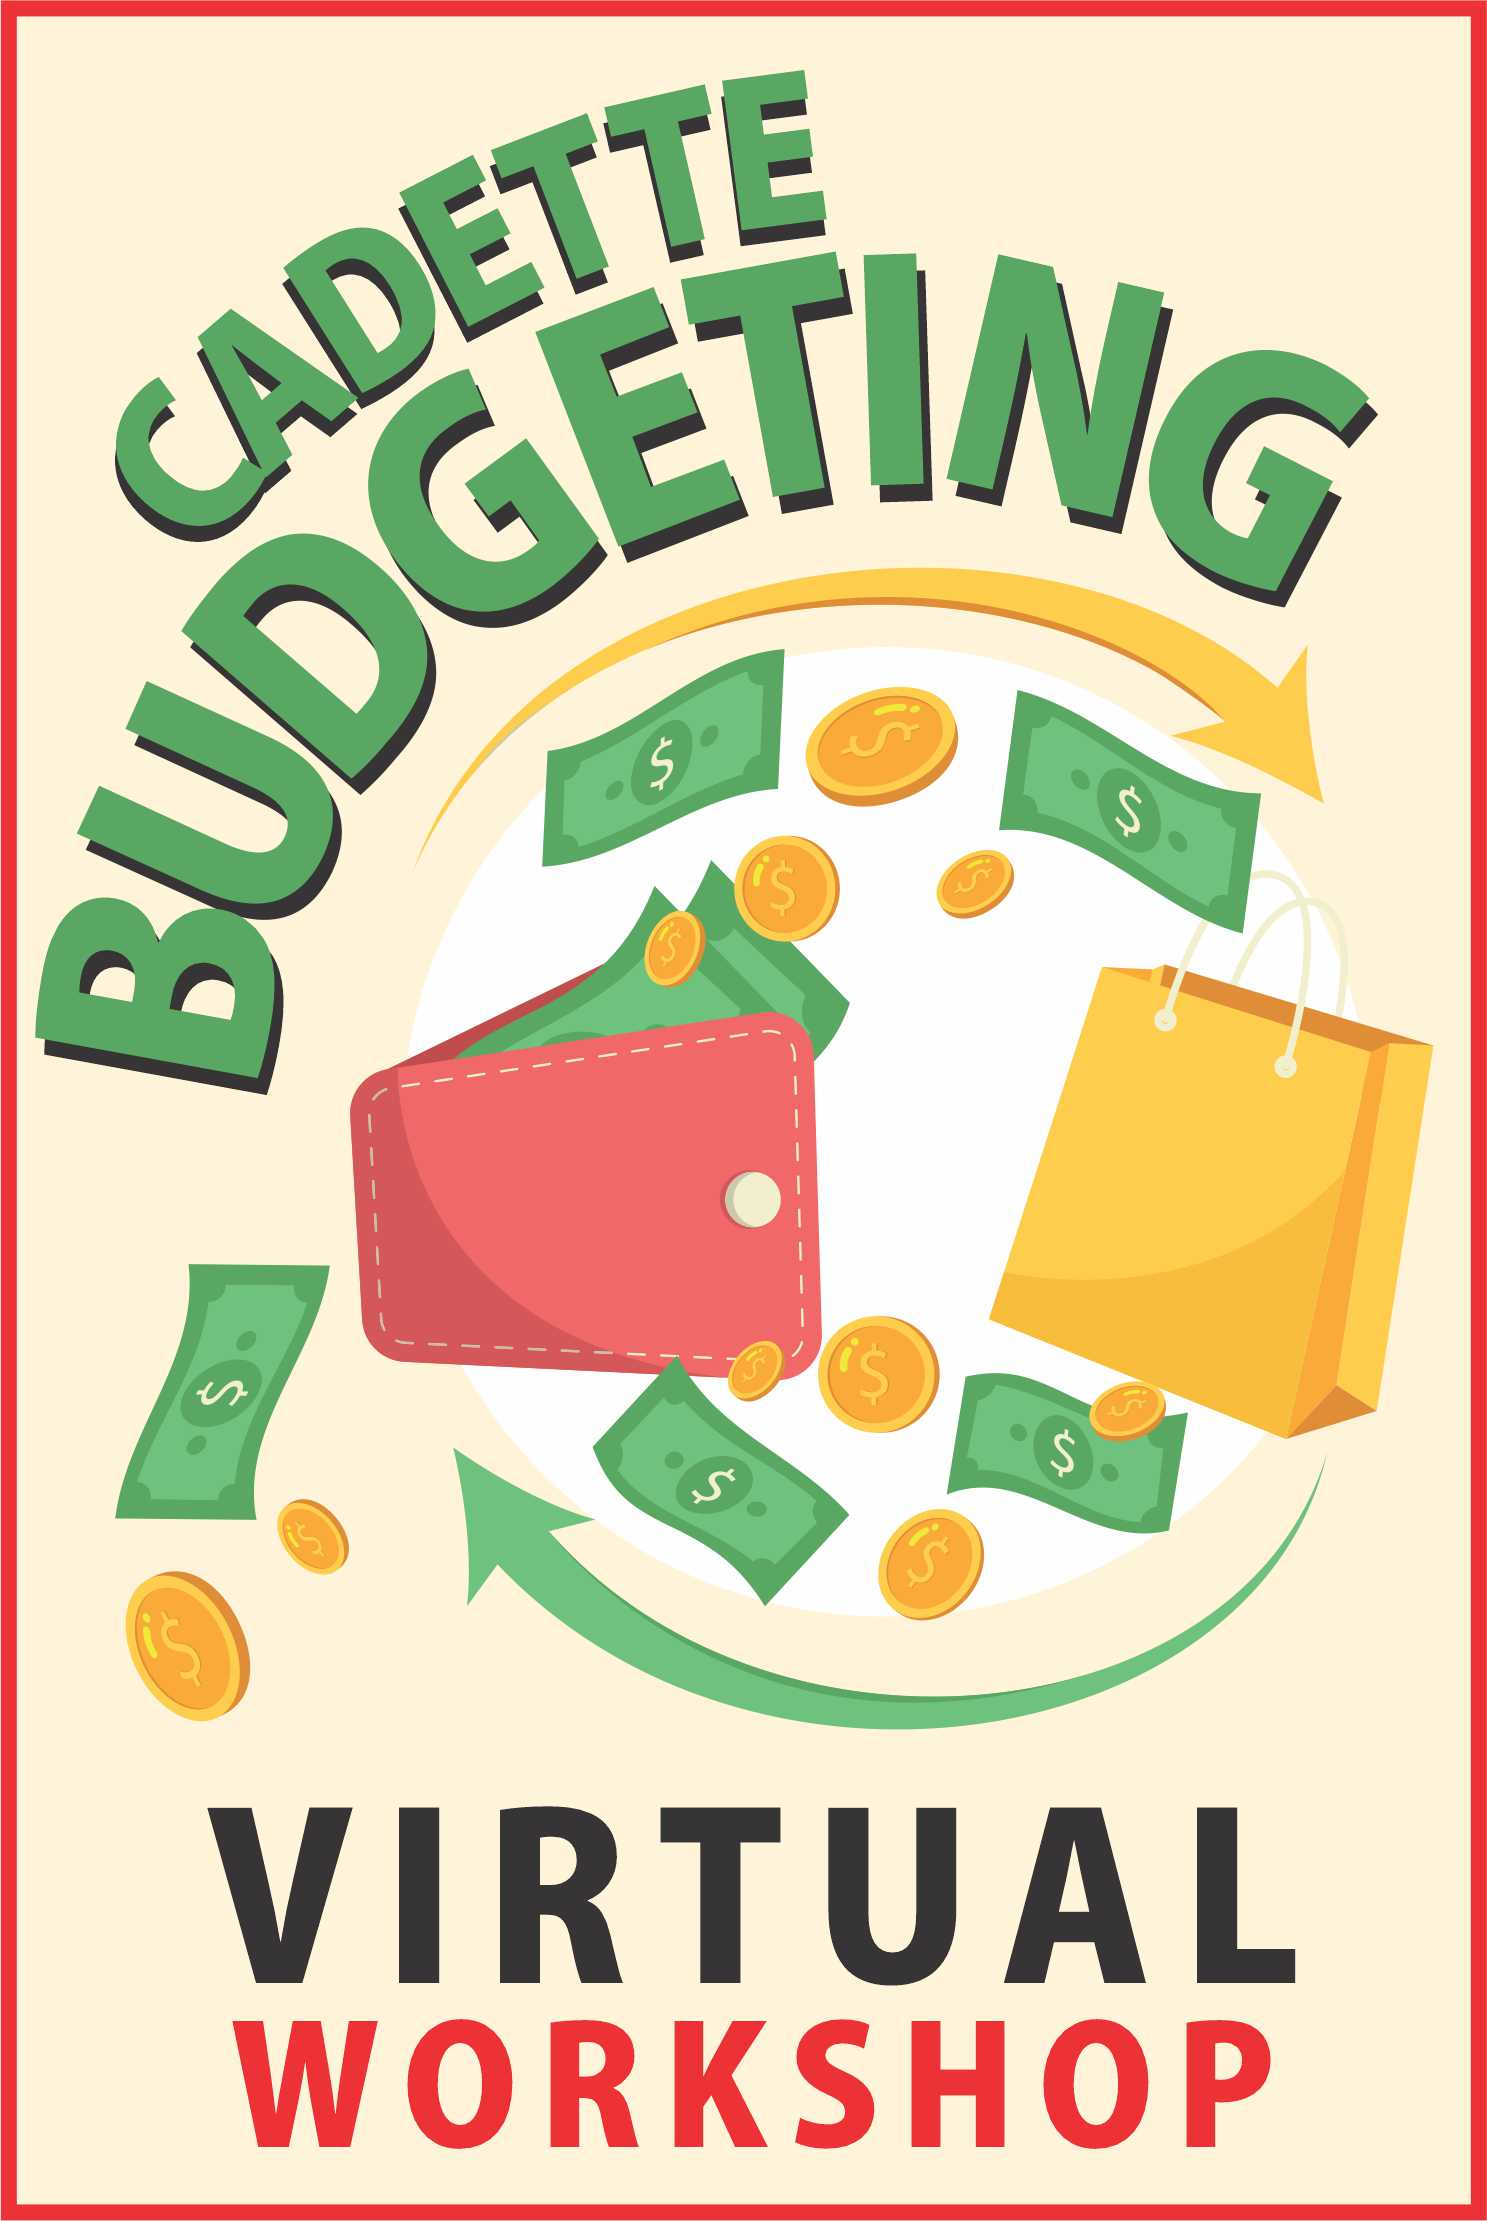 """It's all about fiscal finance and FUN! Your girls will participate in a mock auction to """"win"""" items -- on a budget, of course! #makingfriends #budgeting #girlscoutbudgeting #girlscouts #gsbadge #financialliteracy #auction #virtualworkshop #onlineclass #gs #cadettes #gscaddette via @gsleader411"""